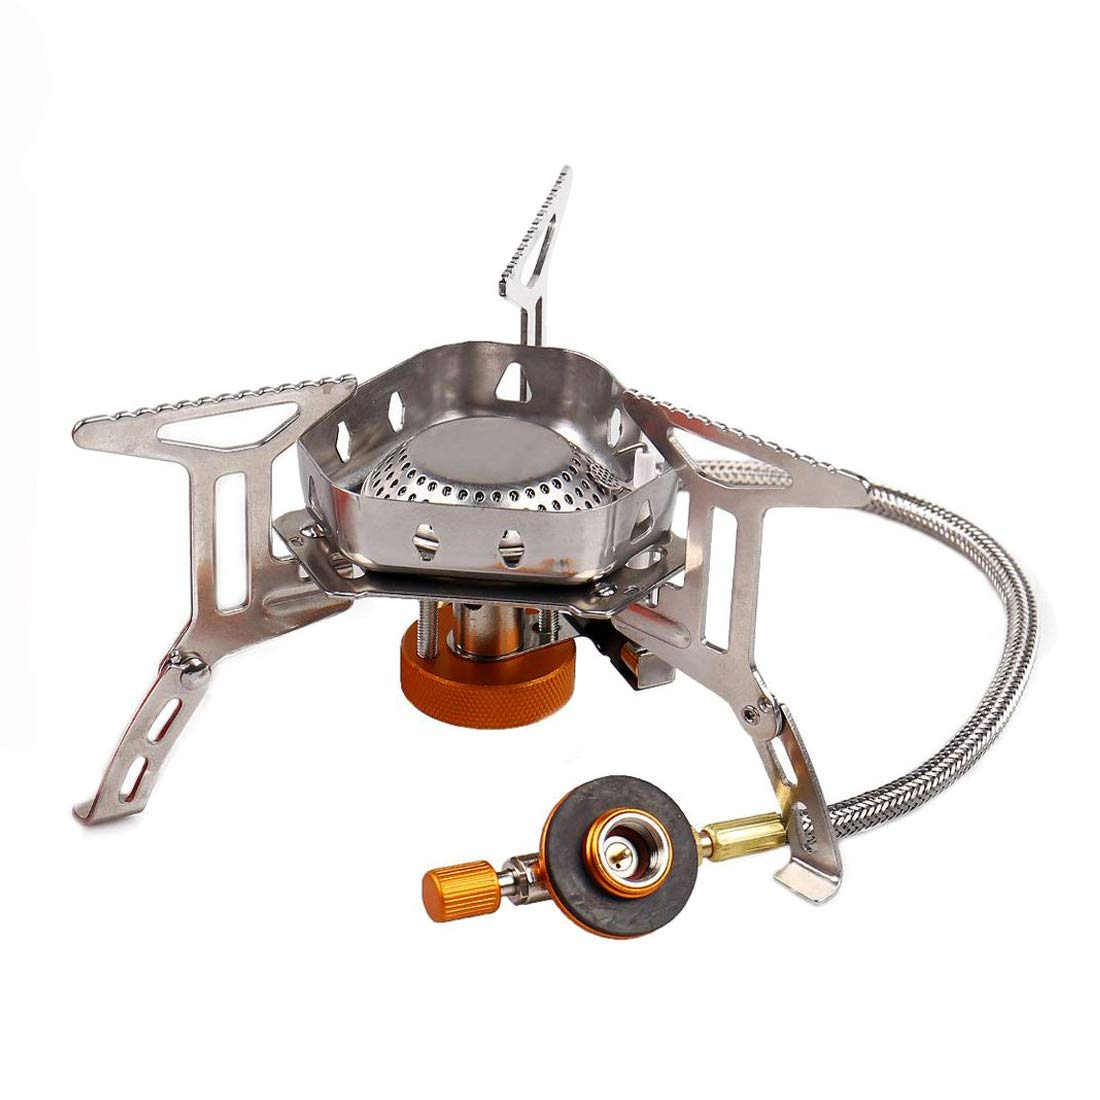 Gas Camping Stove 3500W Foldable Mini Gas Stove with Piezo Ignition and Storage Box Durable Windproof Gas Stove Portable Cooker Burner for Outdoor Backpacking Camping Picnic Hiking and Trekking